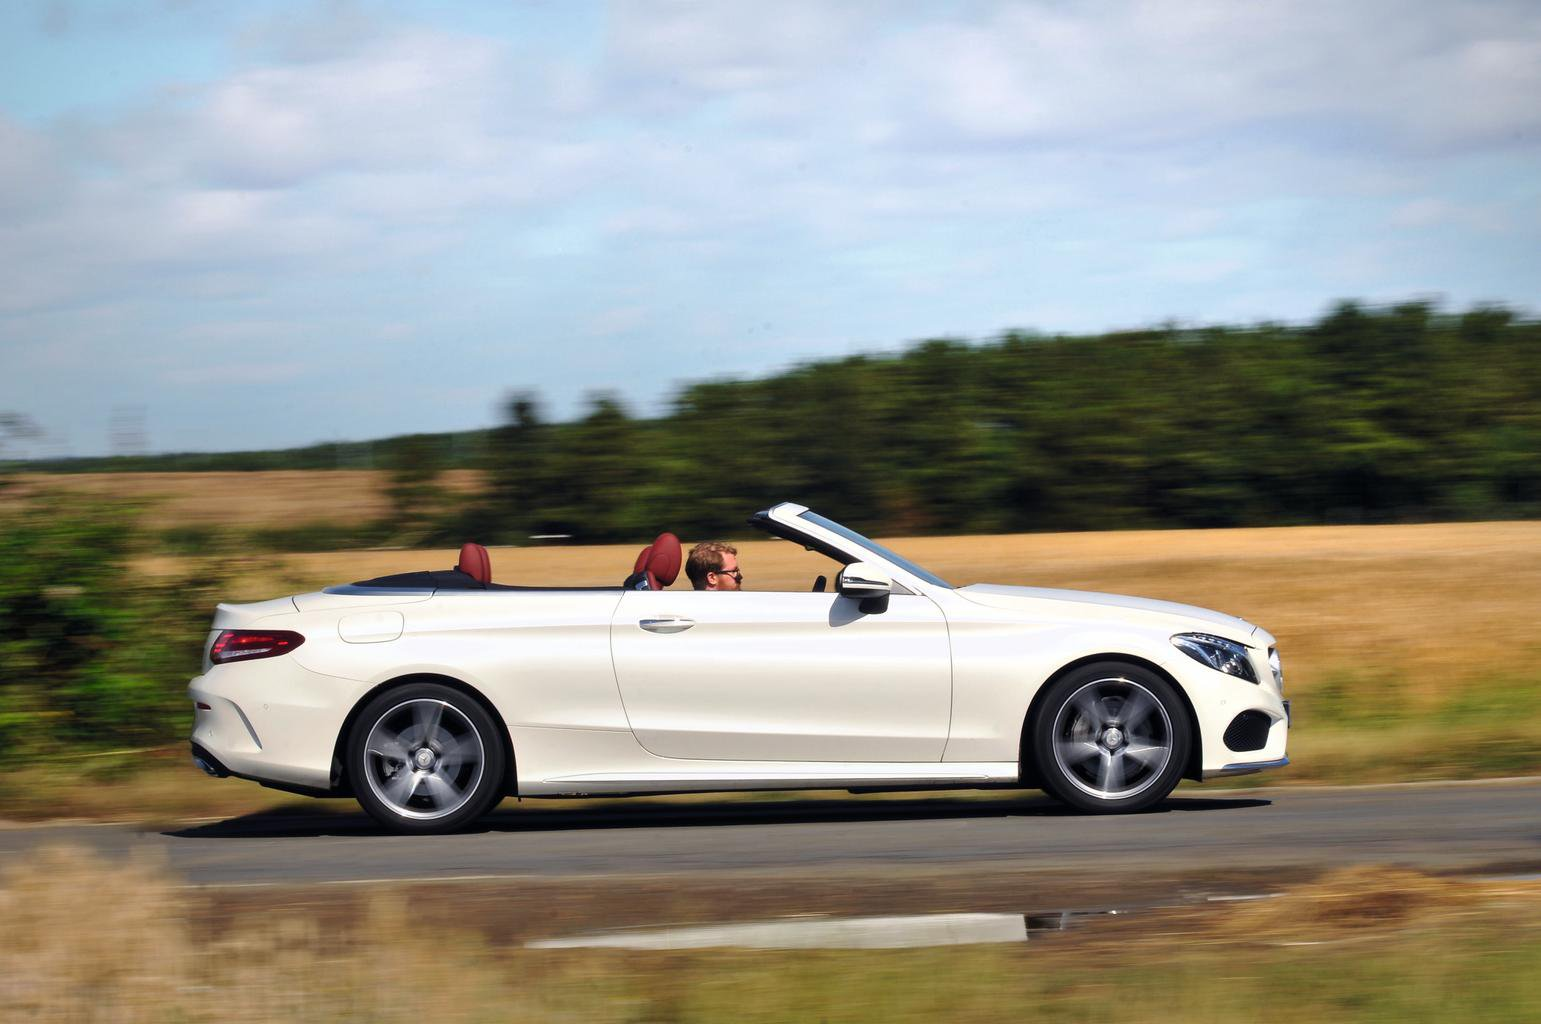 Used Mercedes-Benz C-Class Cabriolet 16-present